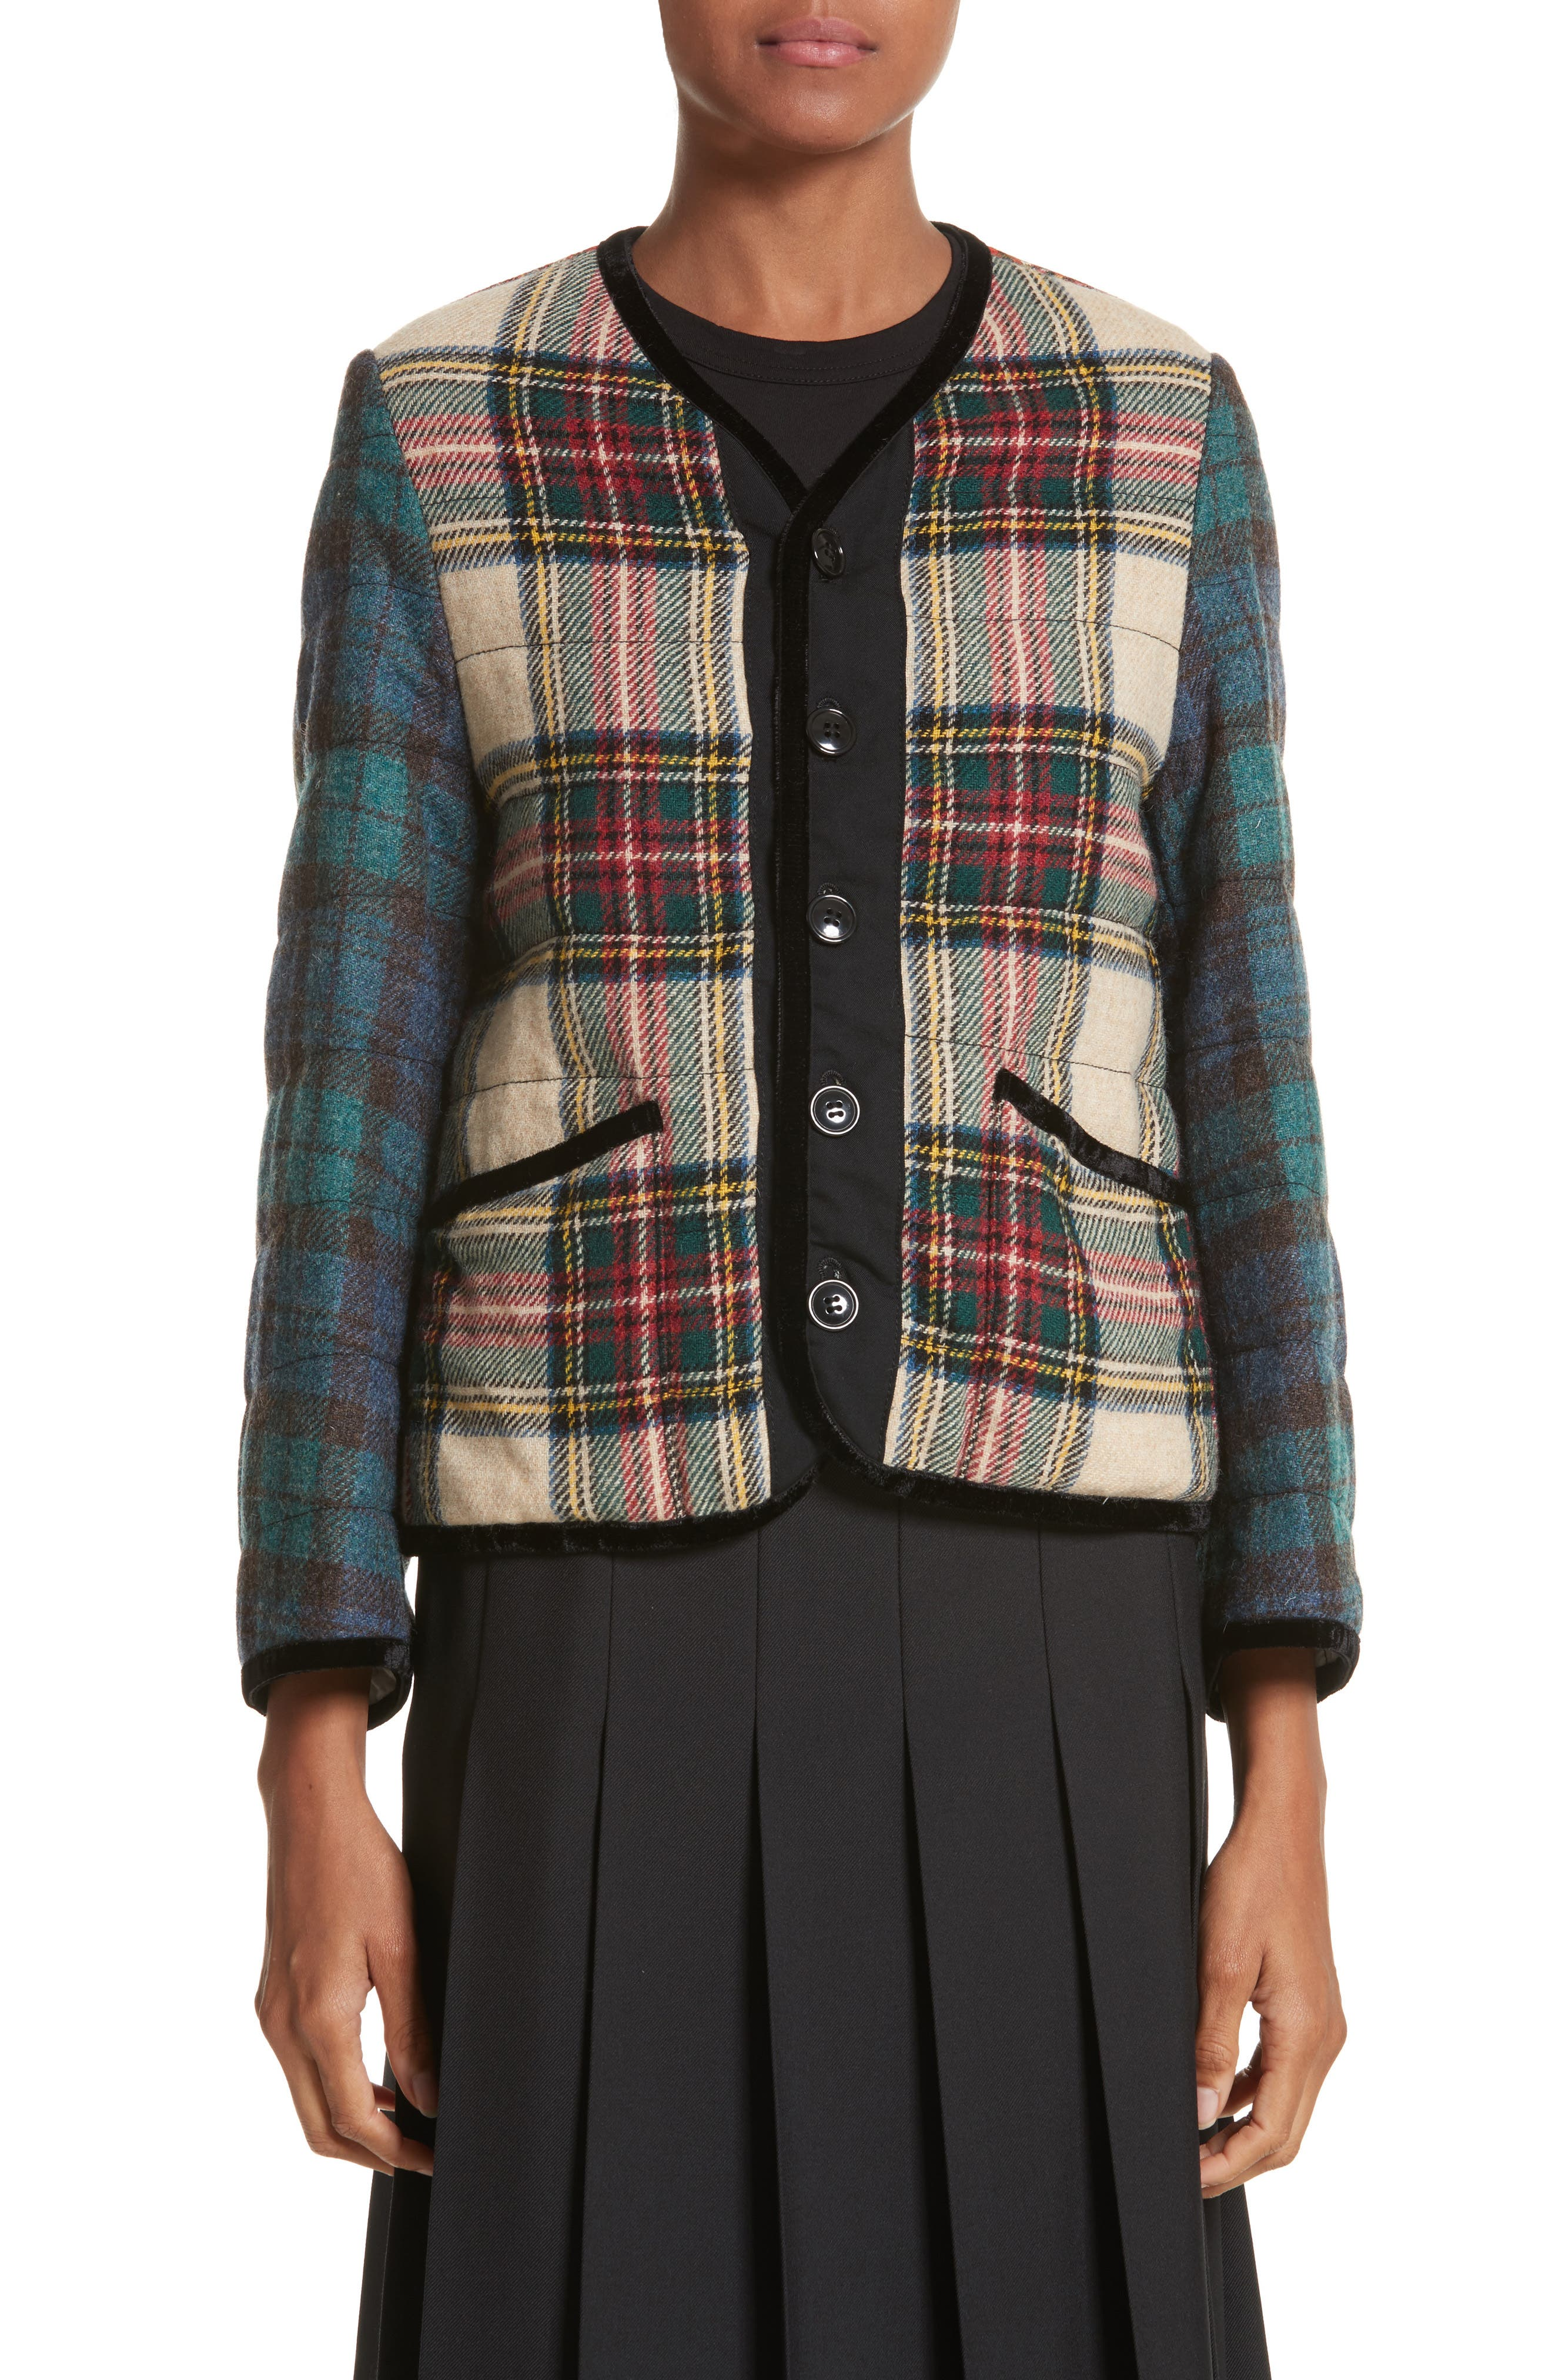 Mixed Tartan Wool Jacket,                         Main,                         color, Off White/Red